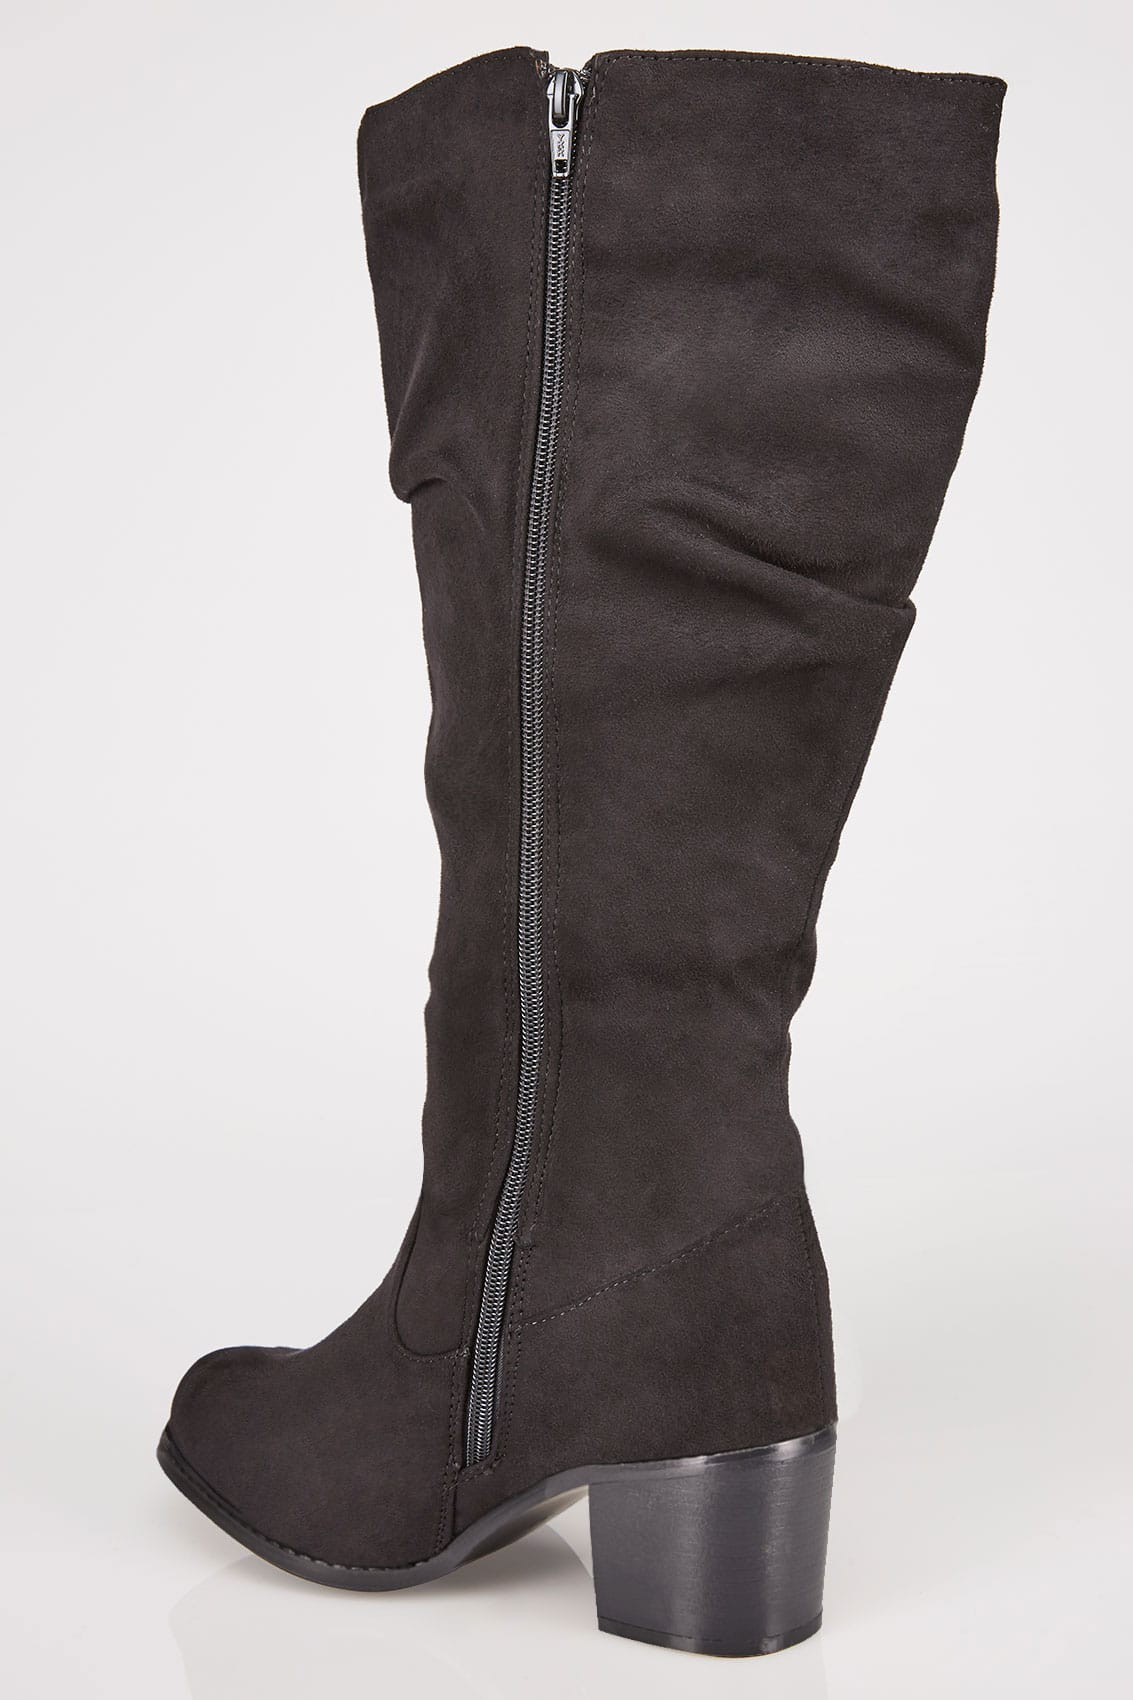 Black Ruched Knee High Block Heel Boots With Xl Calf In